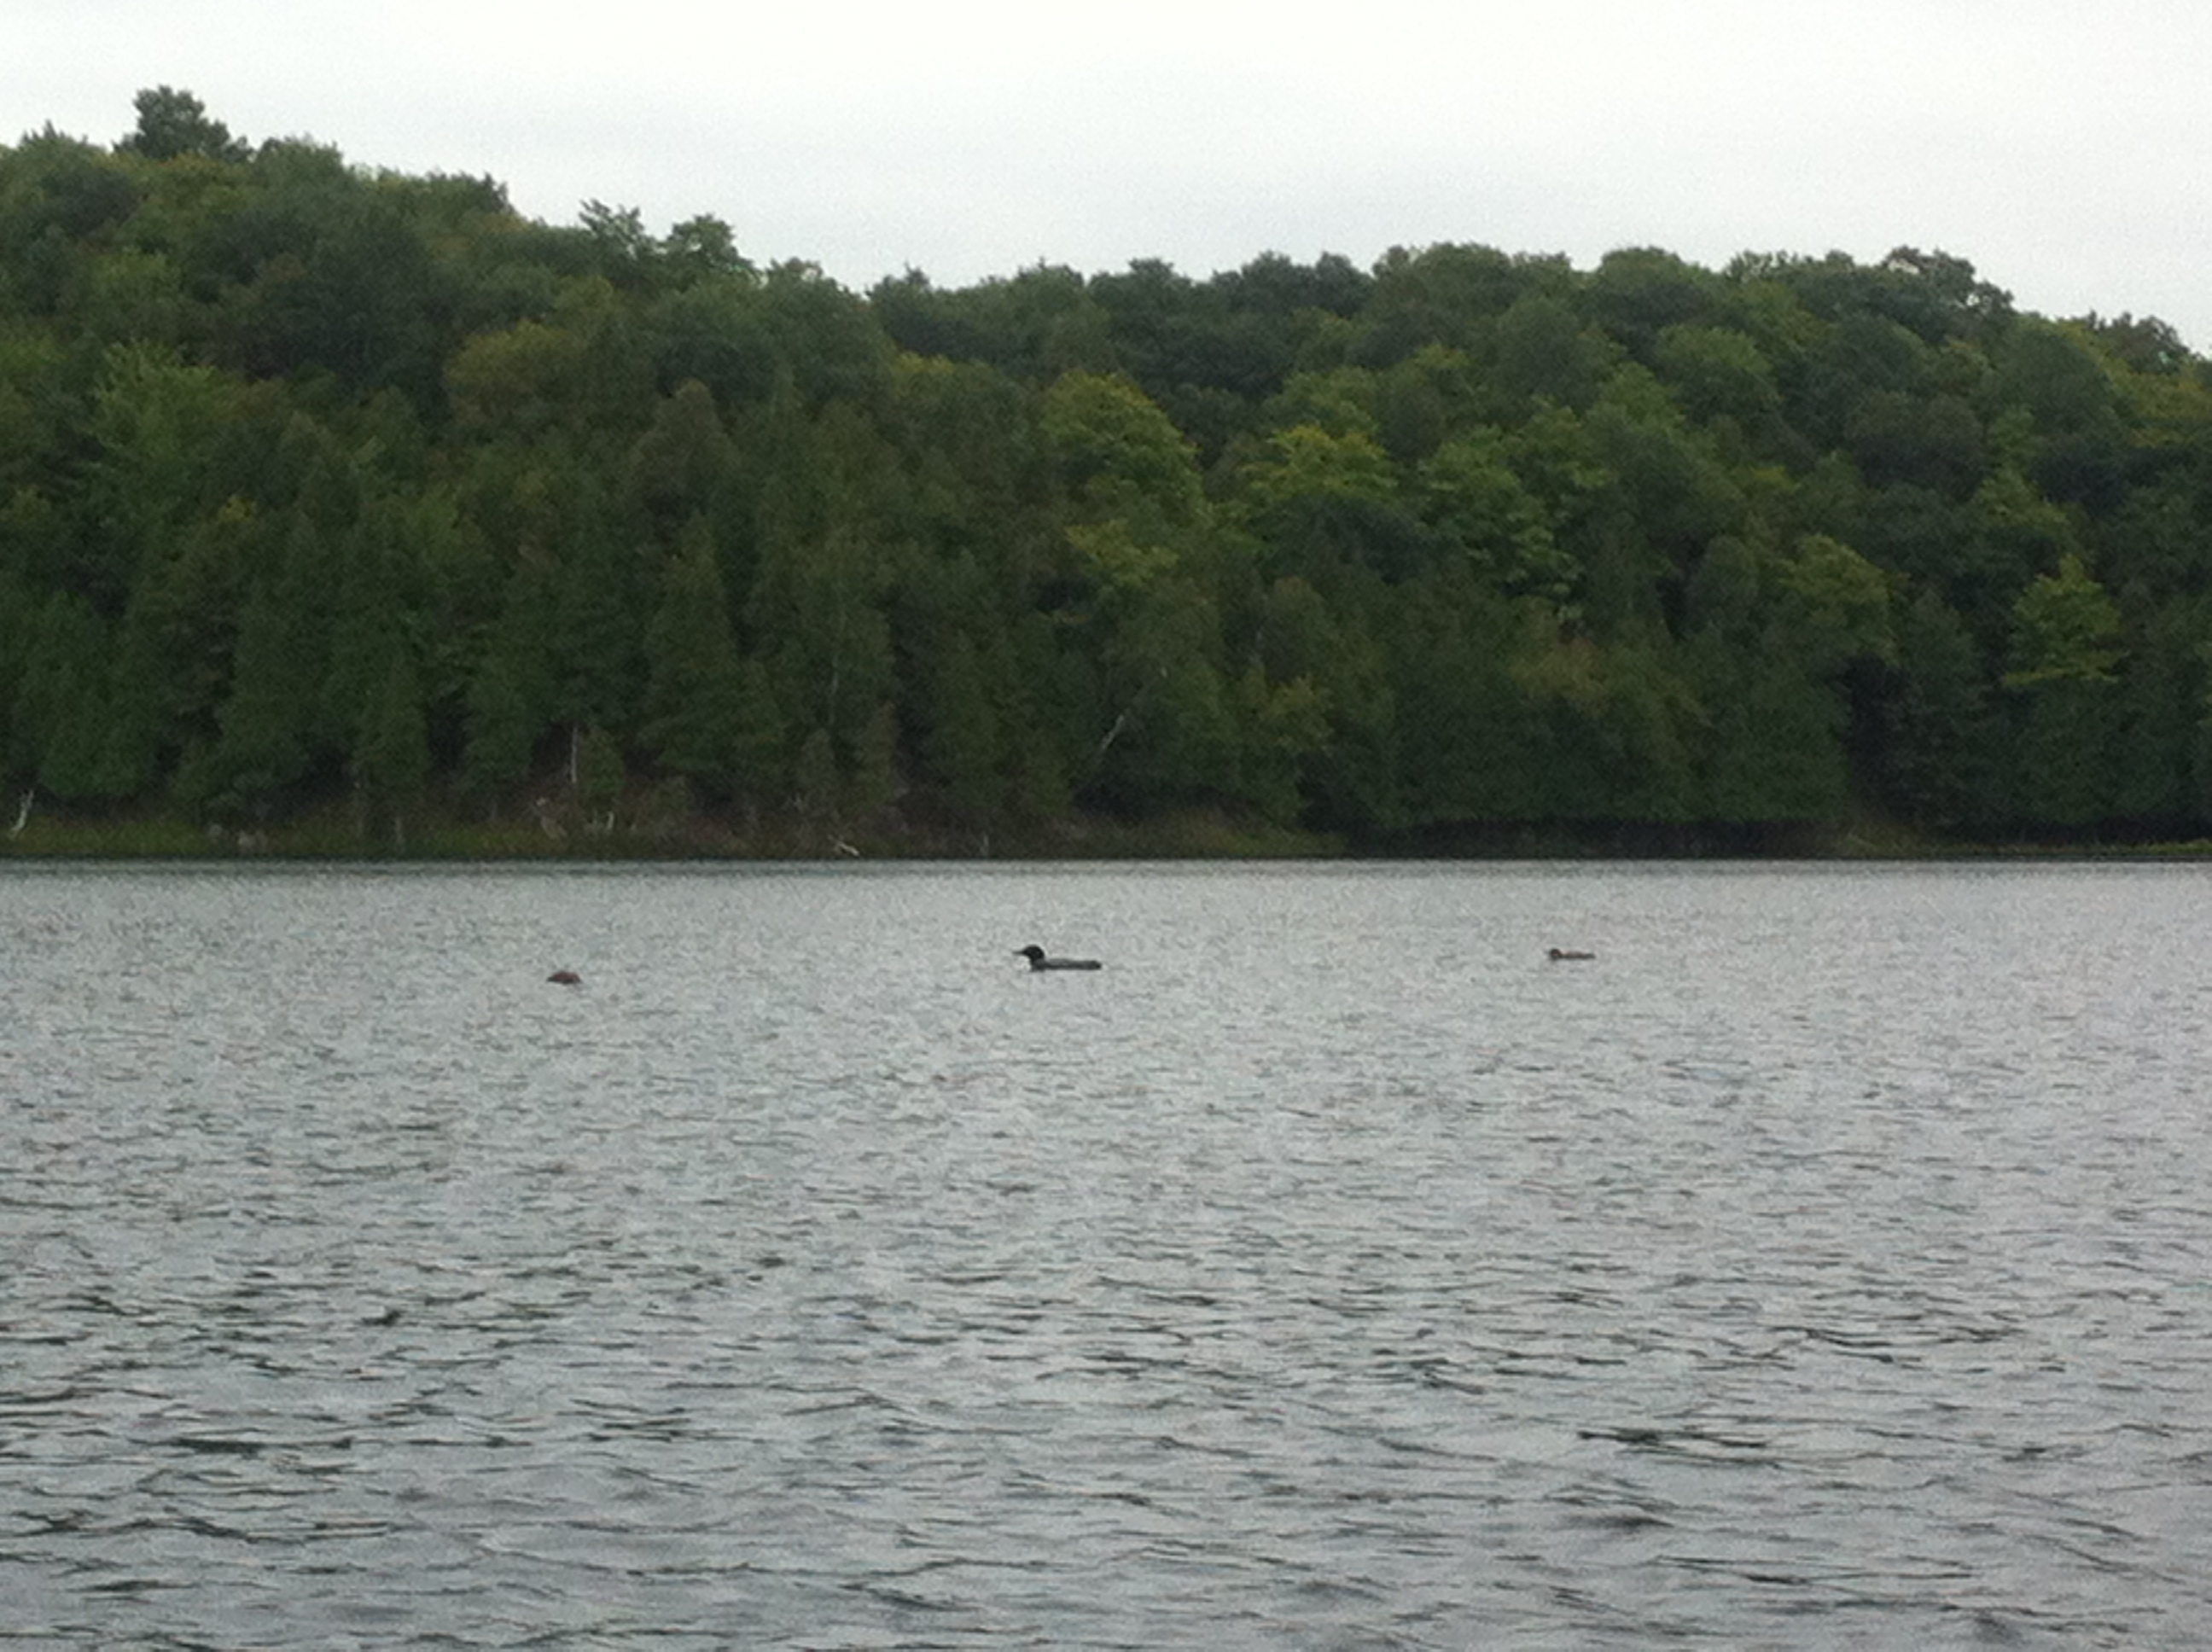 Loons. I must be in Canada.